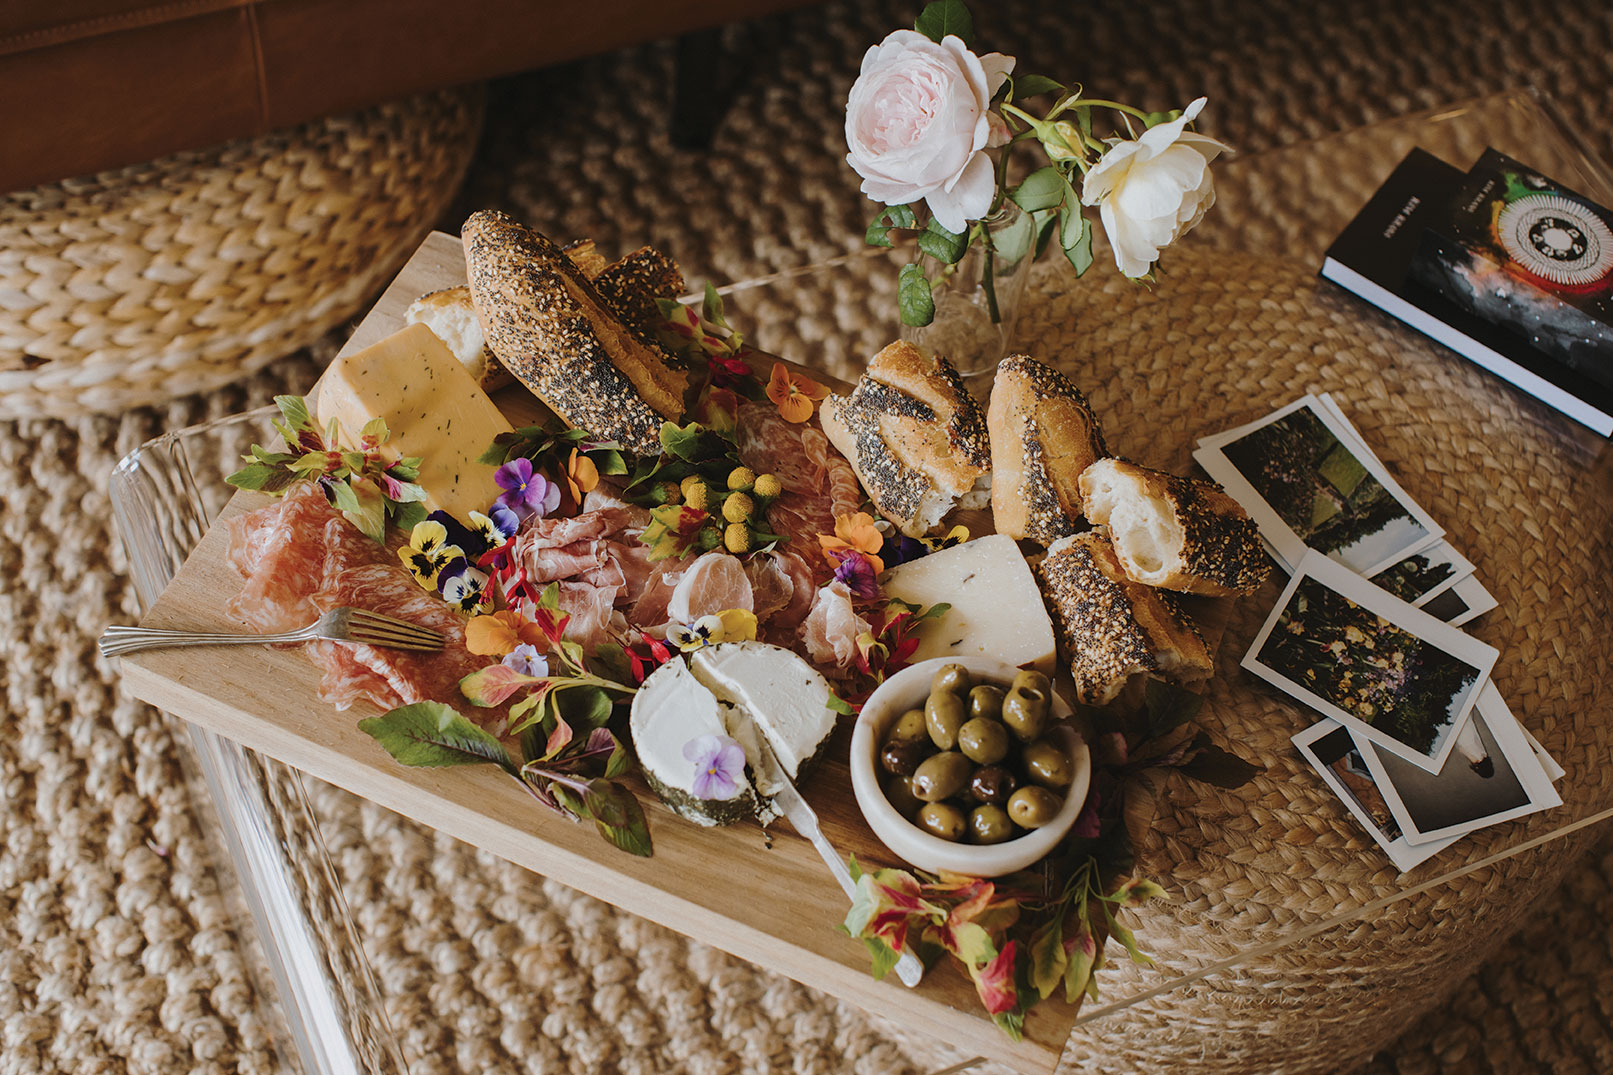 natalie gill flower edible flowers charcuterie board